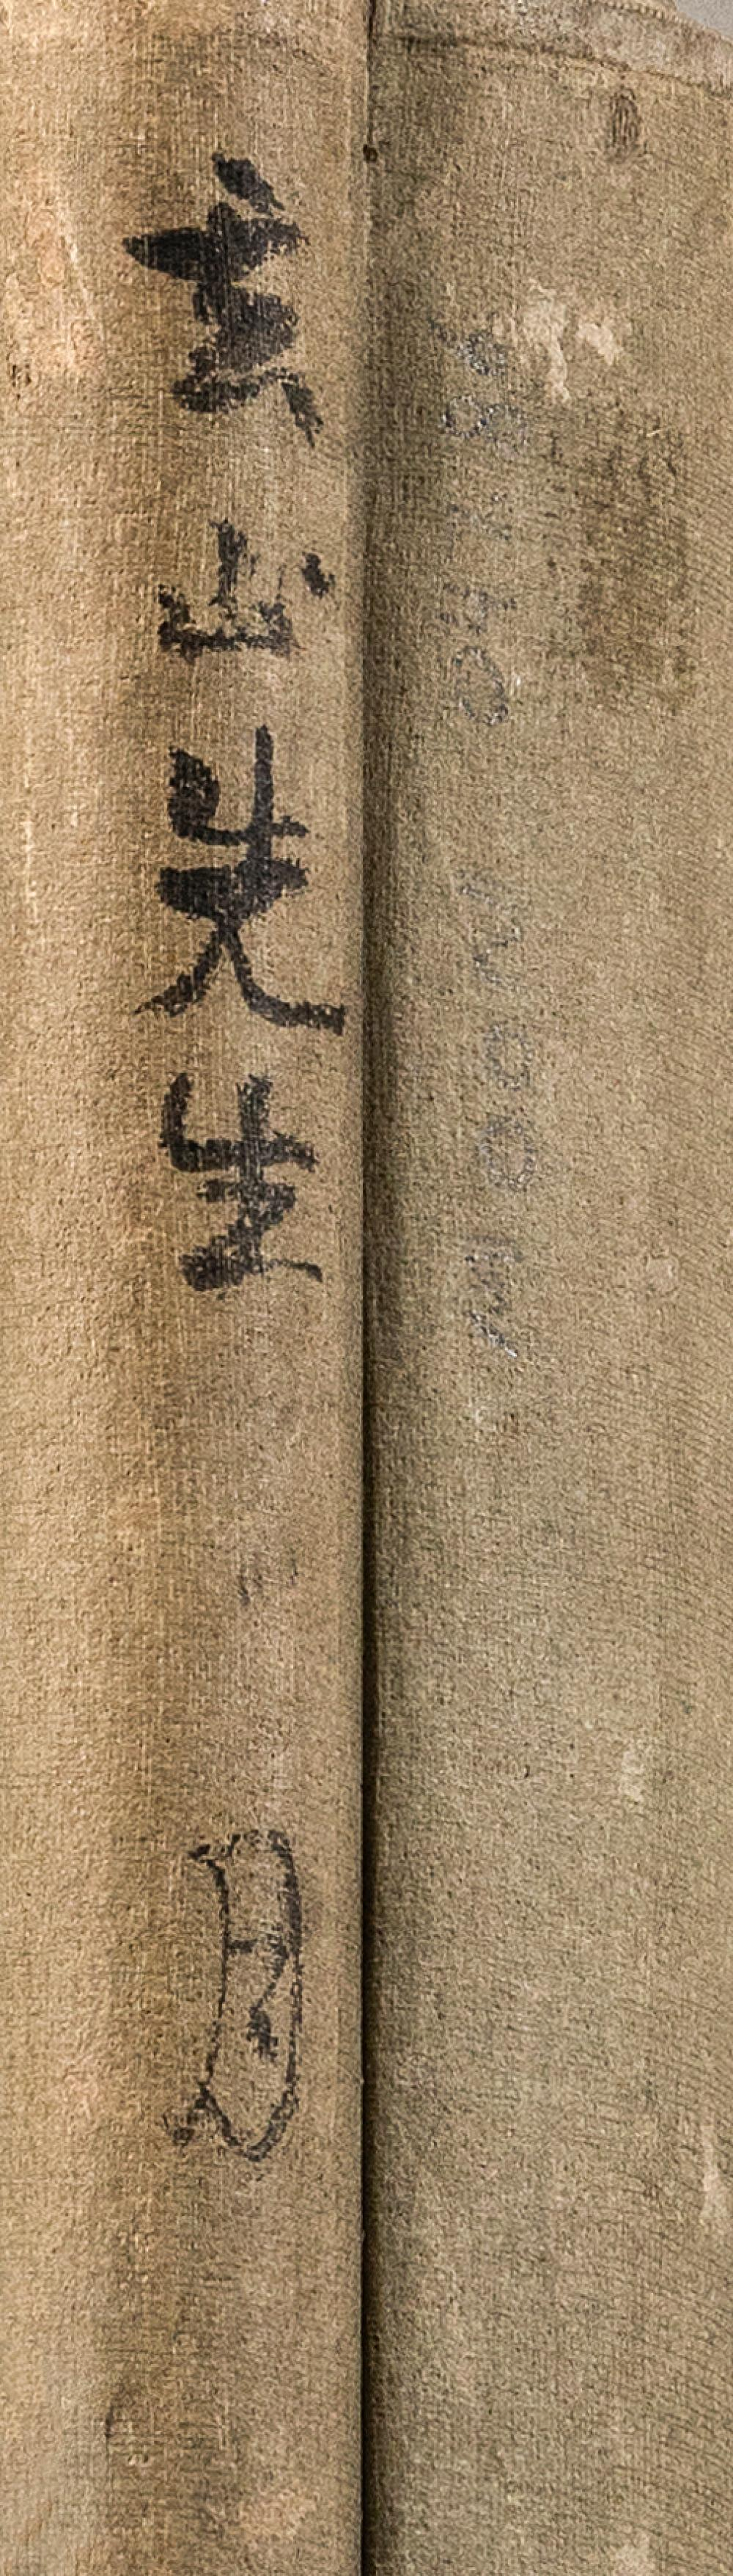 JAPANESE ZENGA SCROLL PAINTING ON PAPER BY KAZINO GENZAN Depicts a tea ceremony moon. 49.25